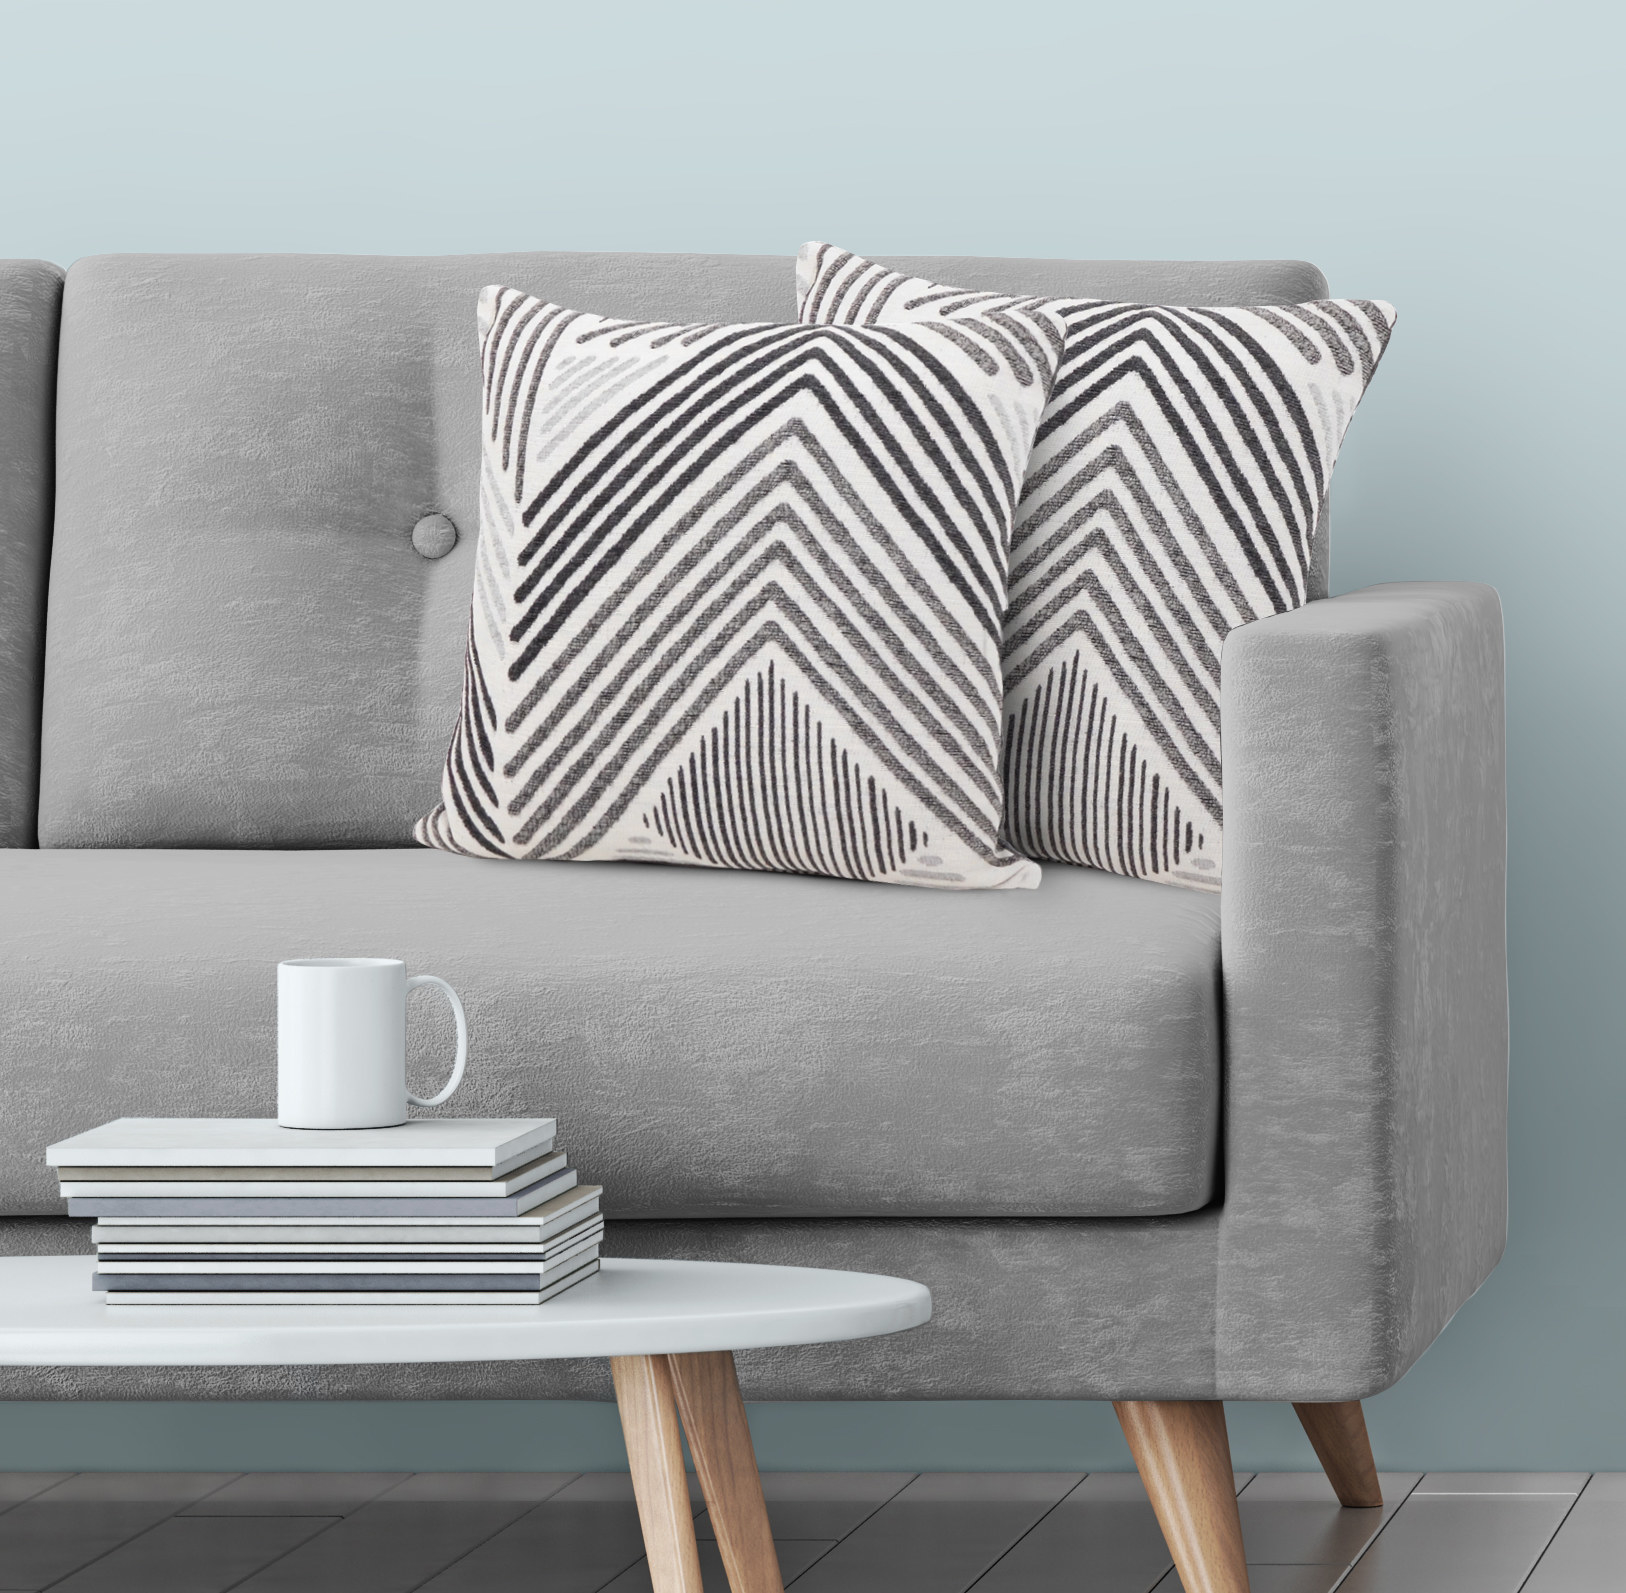 The pillows, which are small and square throw pillows, with a light gray base, and chevron stripe patterns in darker gray